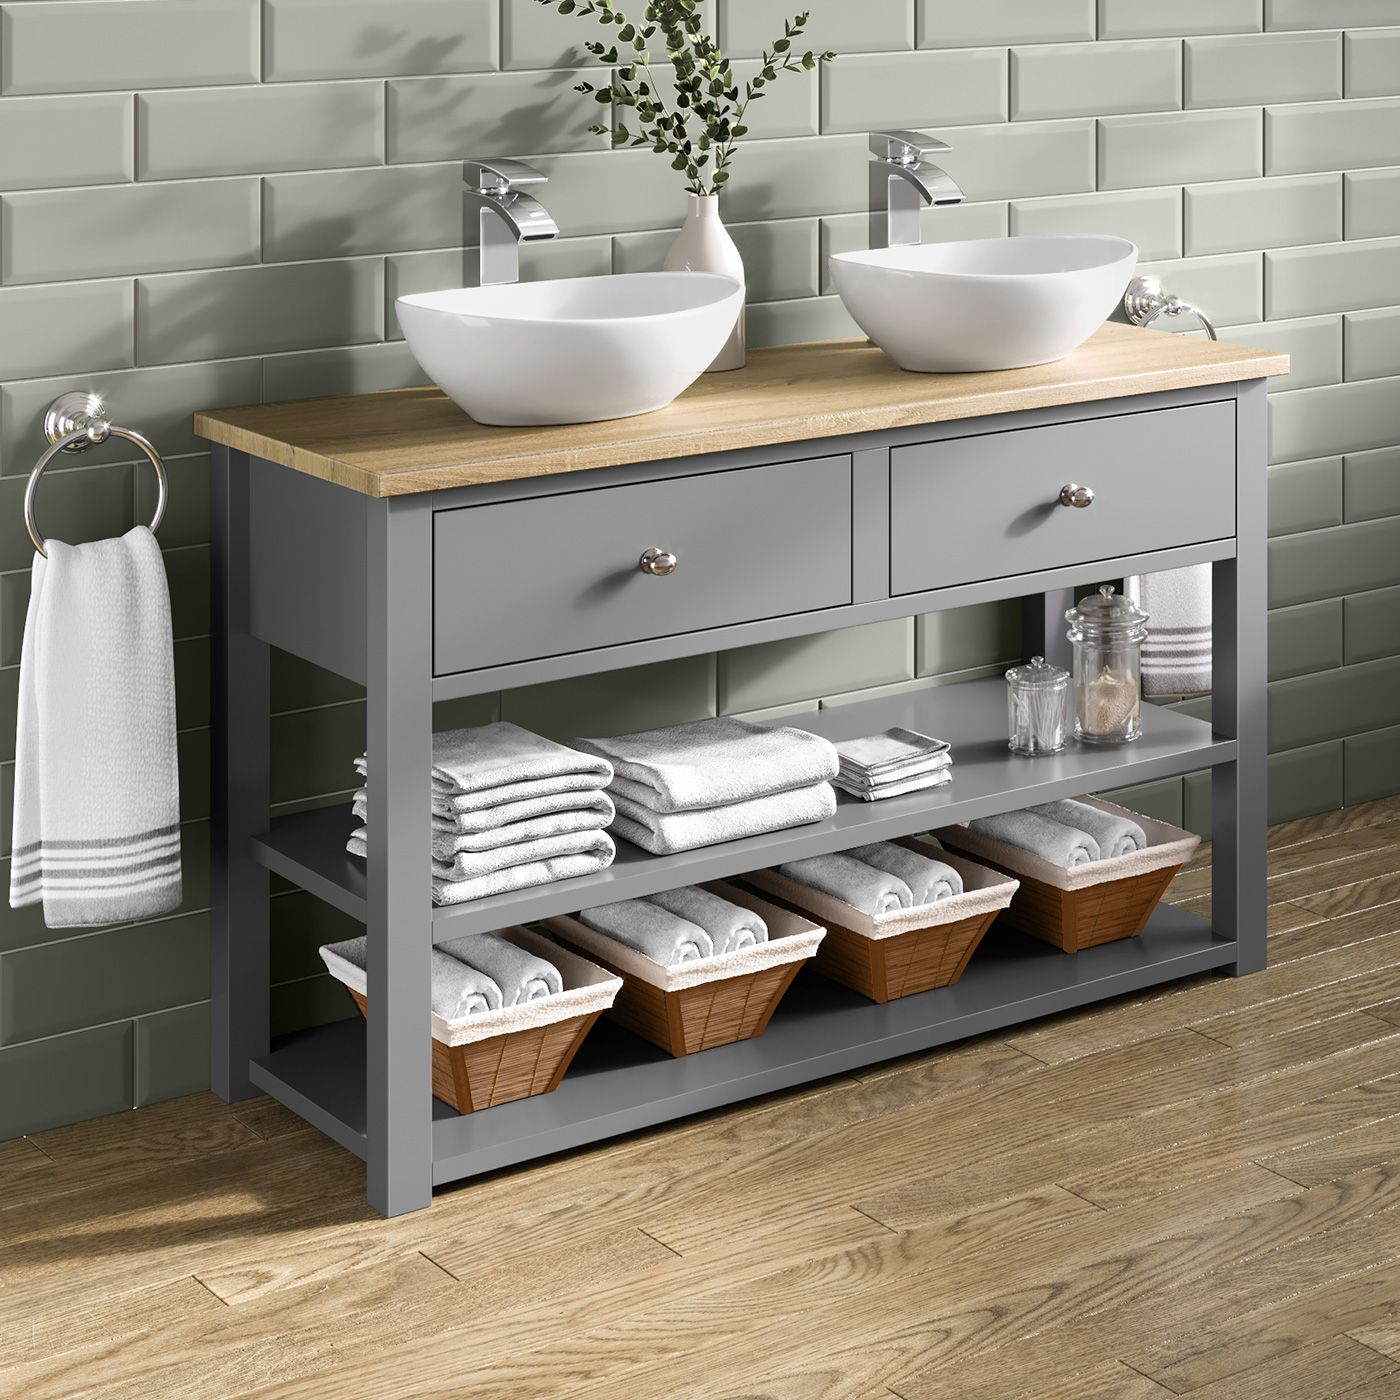 Umywalka Nablatowa Massi Oval Niewielka I O Subtelnym Ksztalcie Polecamy Do Malych Lazienek Bathroom Furniture Modern Bathroom Vanity Units Bathroom Units